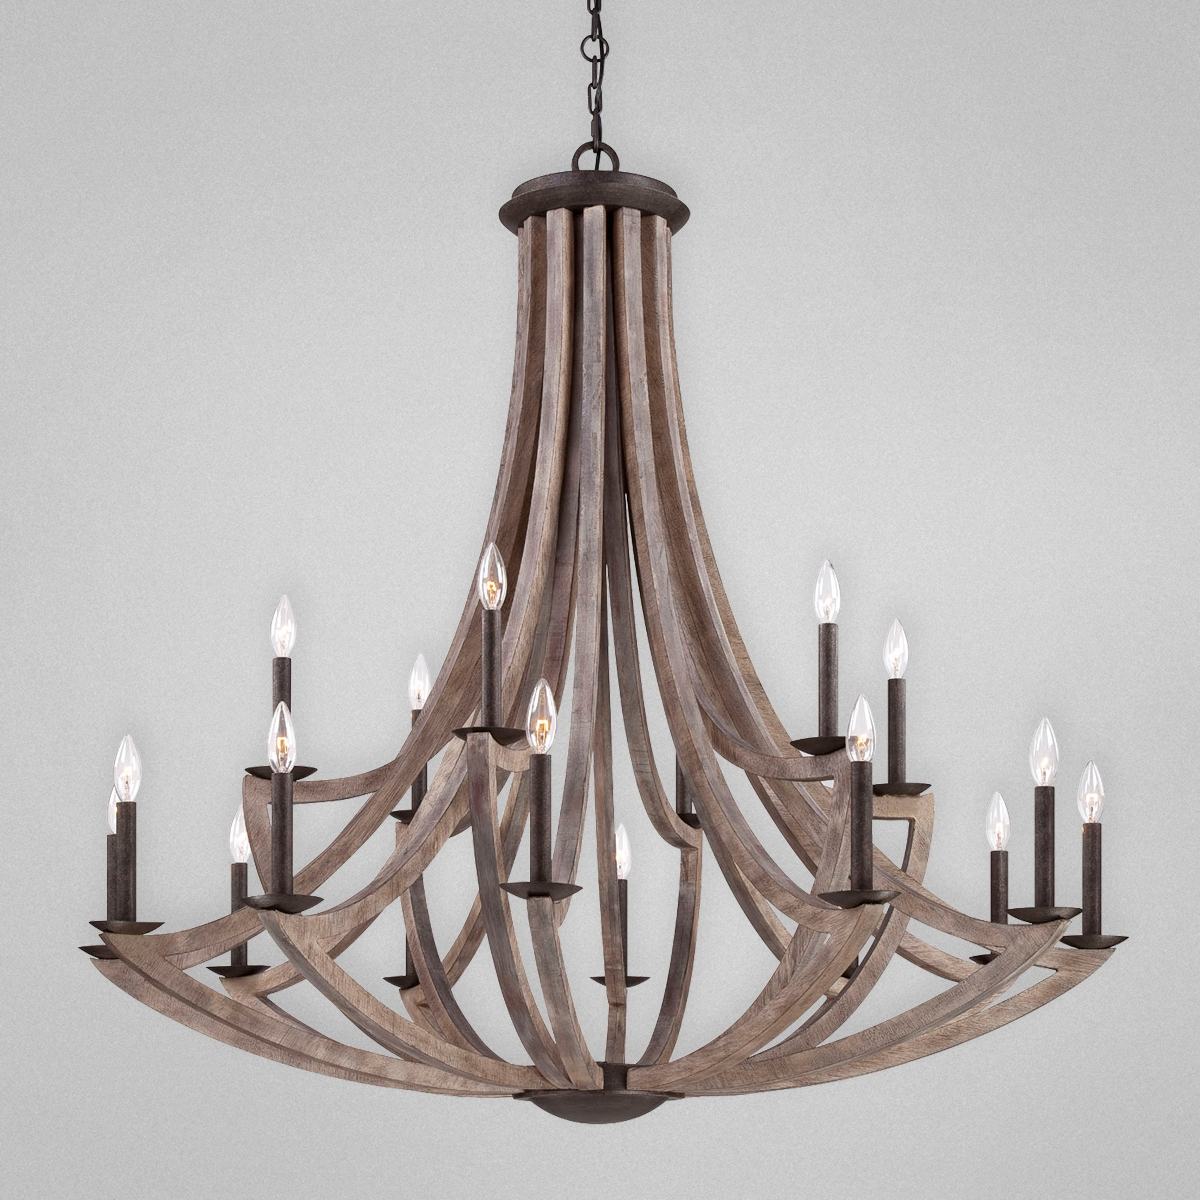 Aden Star Ltd Llc Dba 1020 Decor Arcata Bronze Iron And Wood 18 Pertaining To Wooden Chandeliers (#5 of 12)